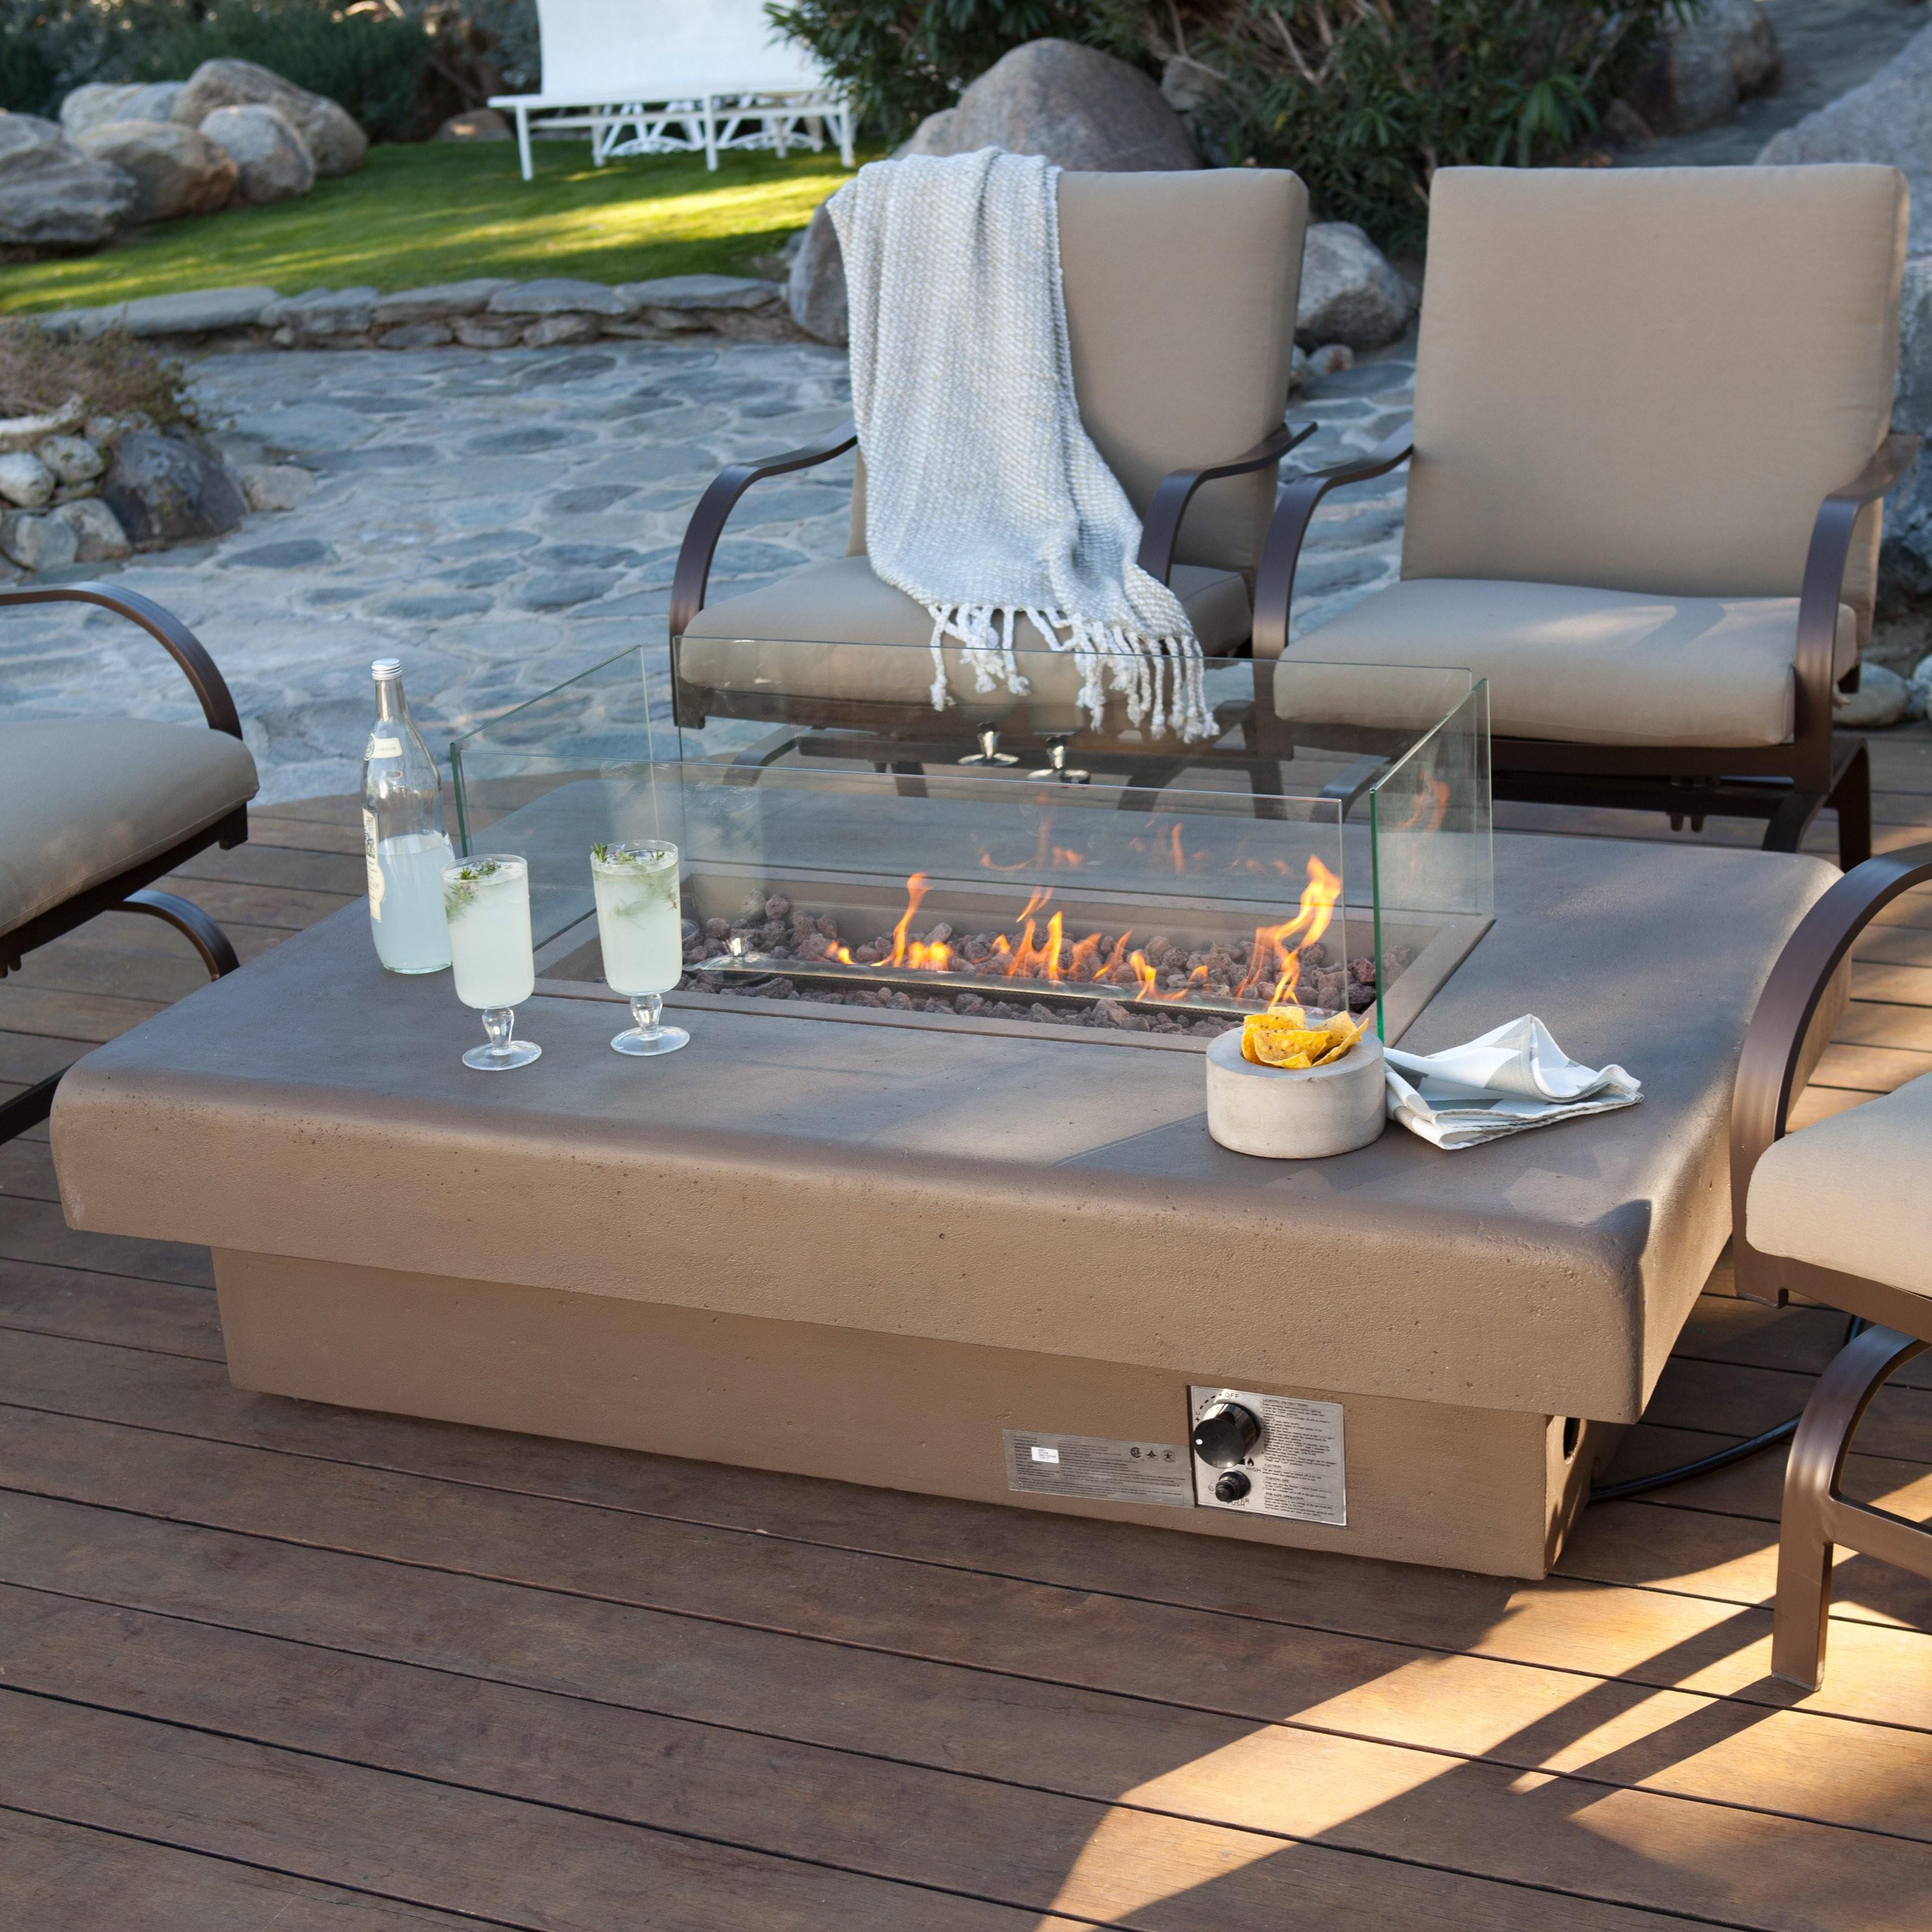 Patio Dining Table Gas Fire Pit Tips Before